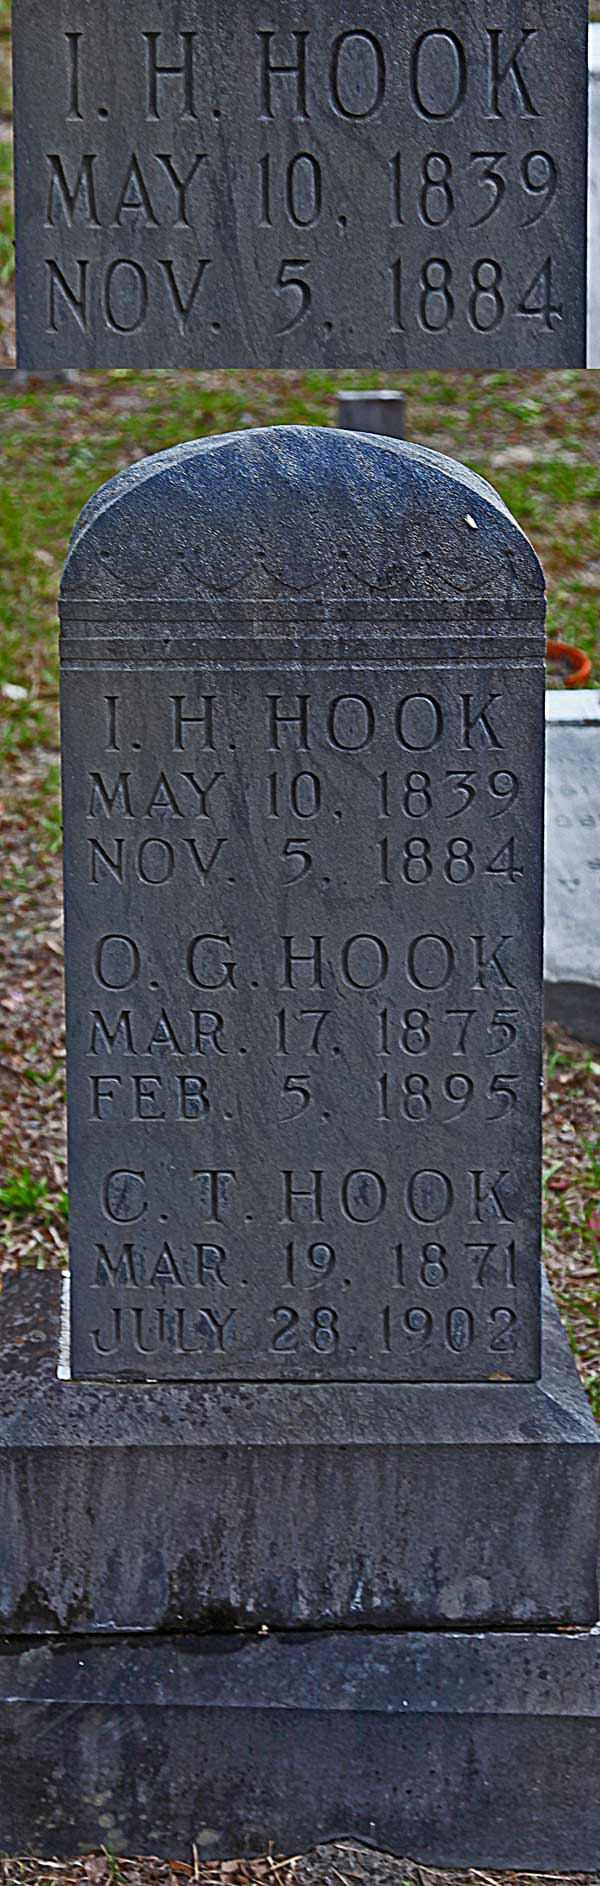 I.H. Hook Gravestone Photo